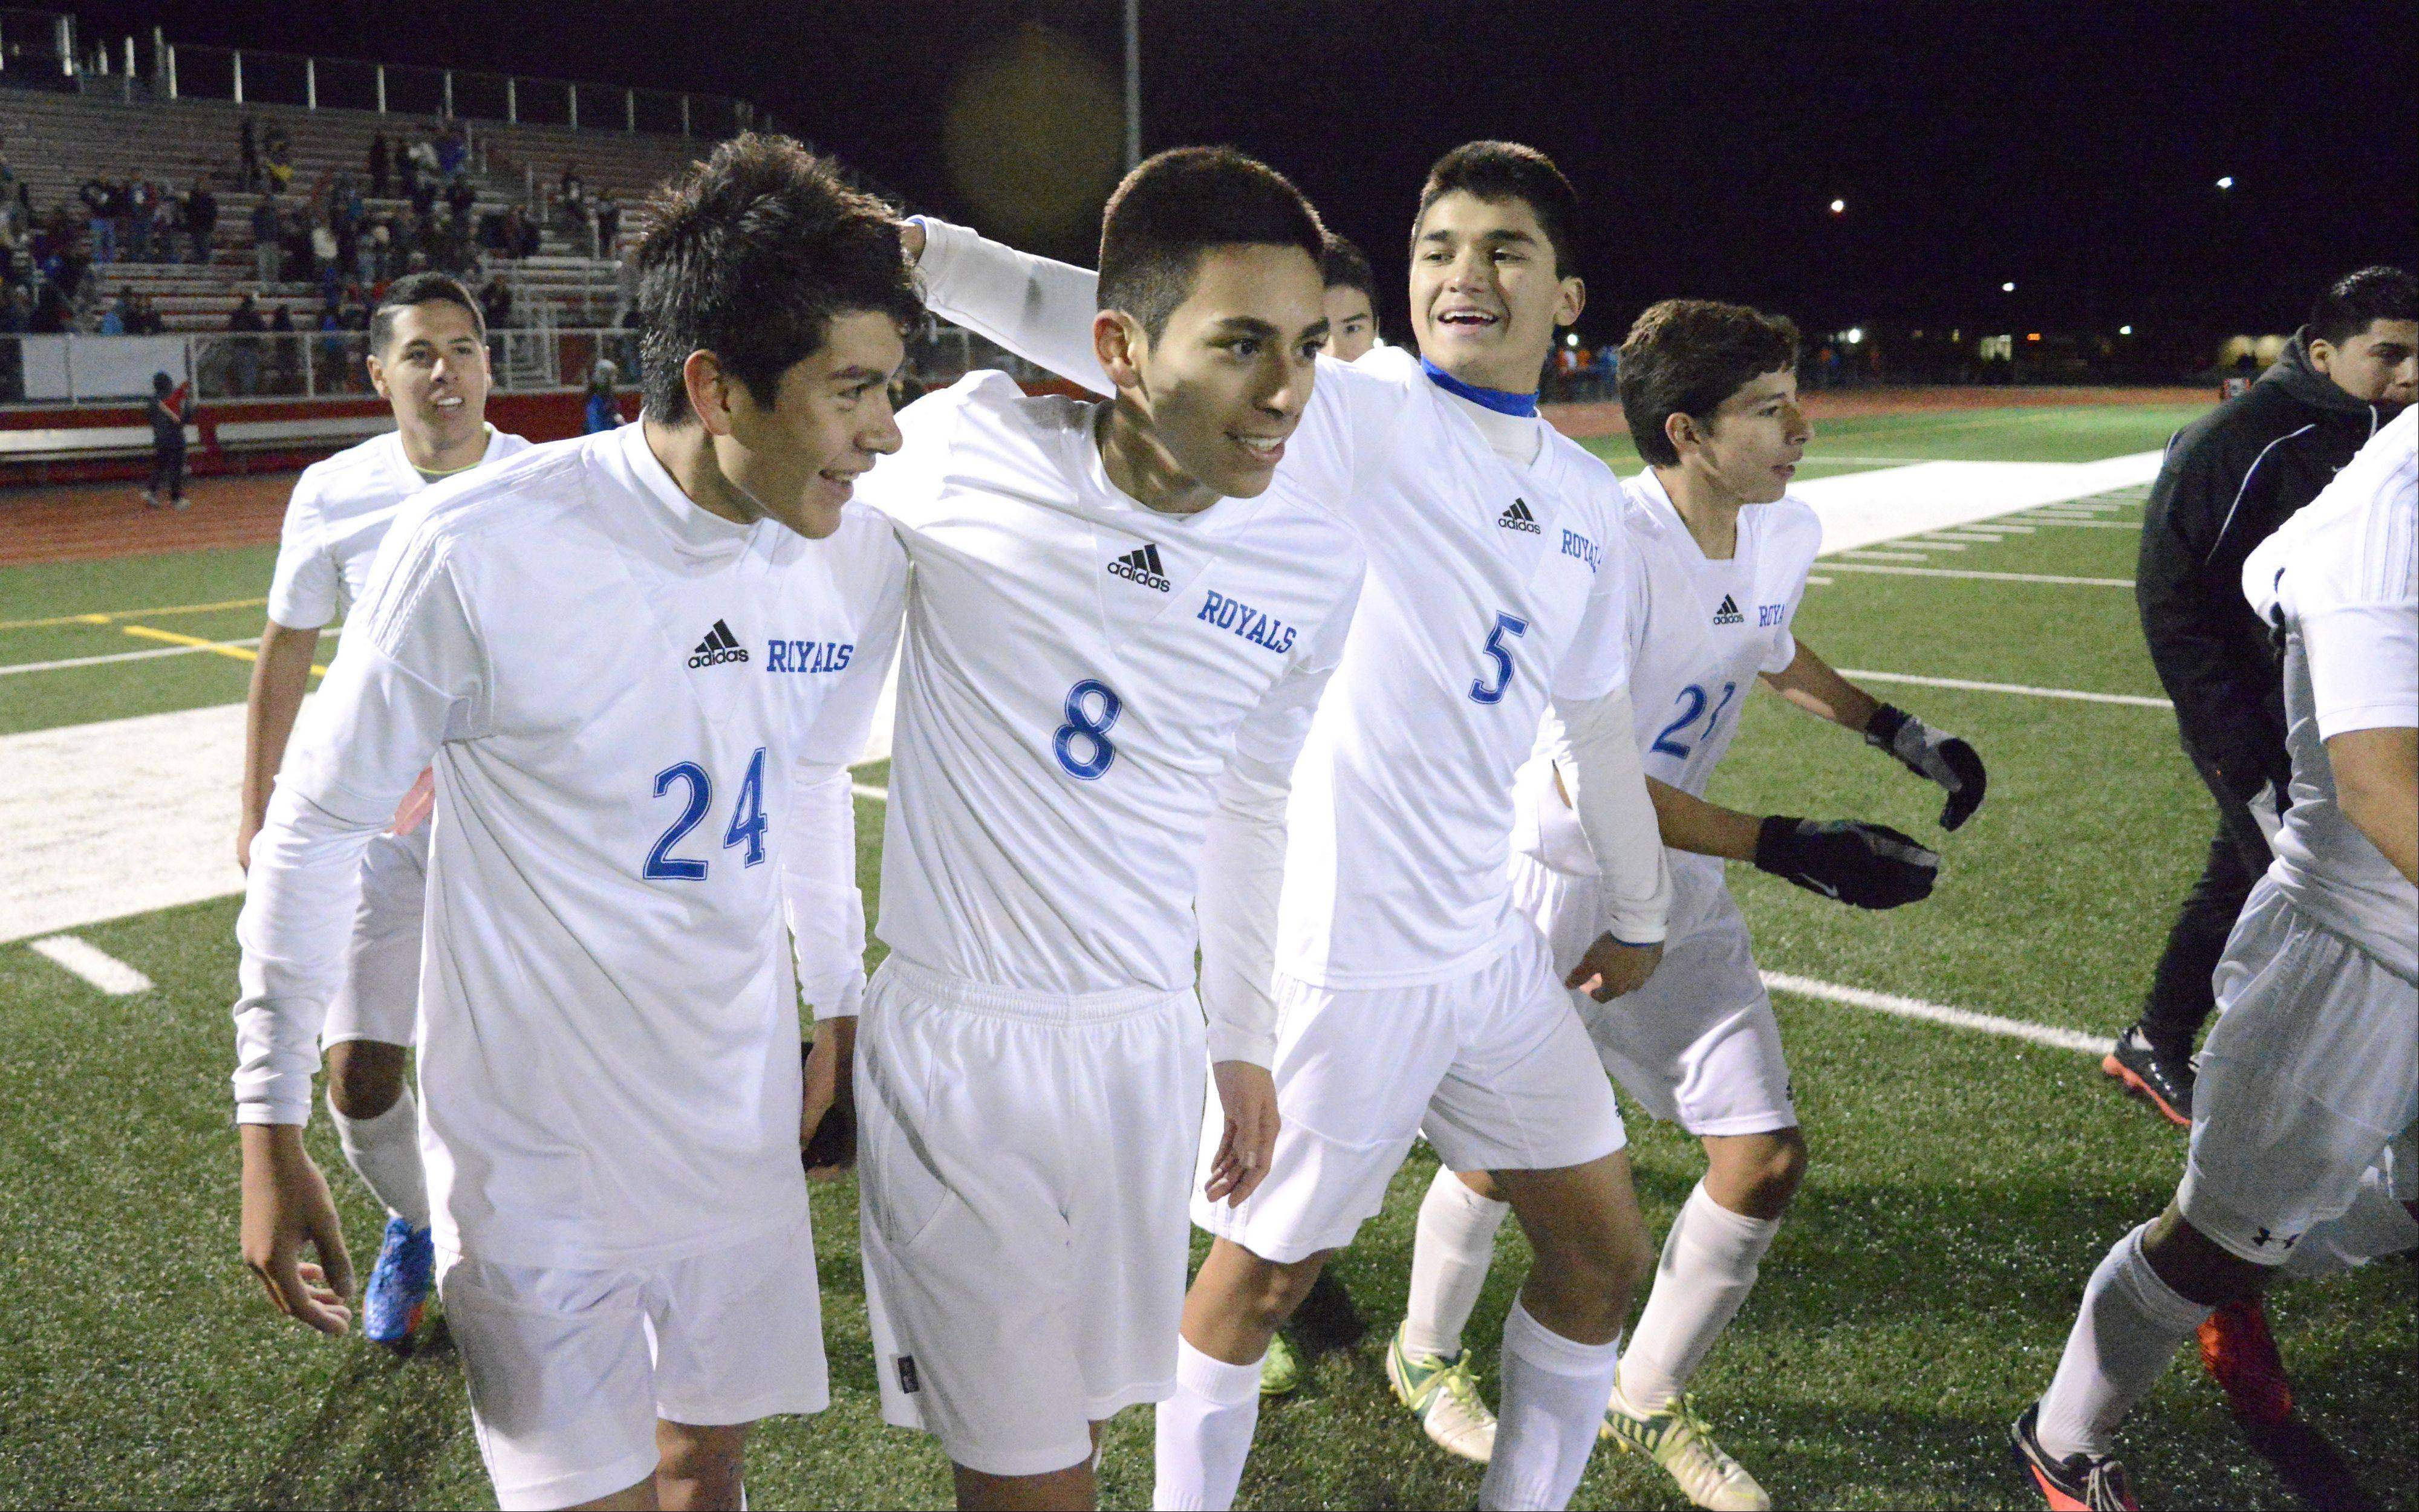 Larkin's Alex Cruz (24) has his hair tousled by teammate Javier Hernandez (5) as they walk with Jesus Avila (8) onto the field to receive their Class 3A sectional championship plaque at Huntley High School on Saturday. Cruz scored the only goal of the game, which gave the Royals the win.